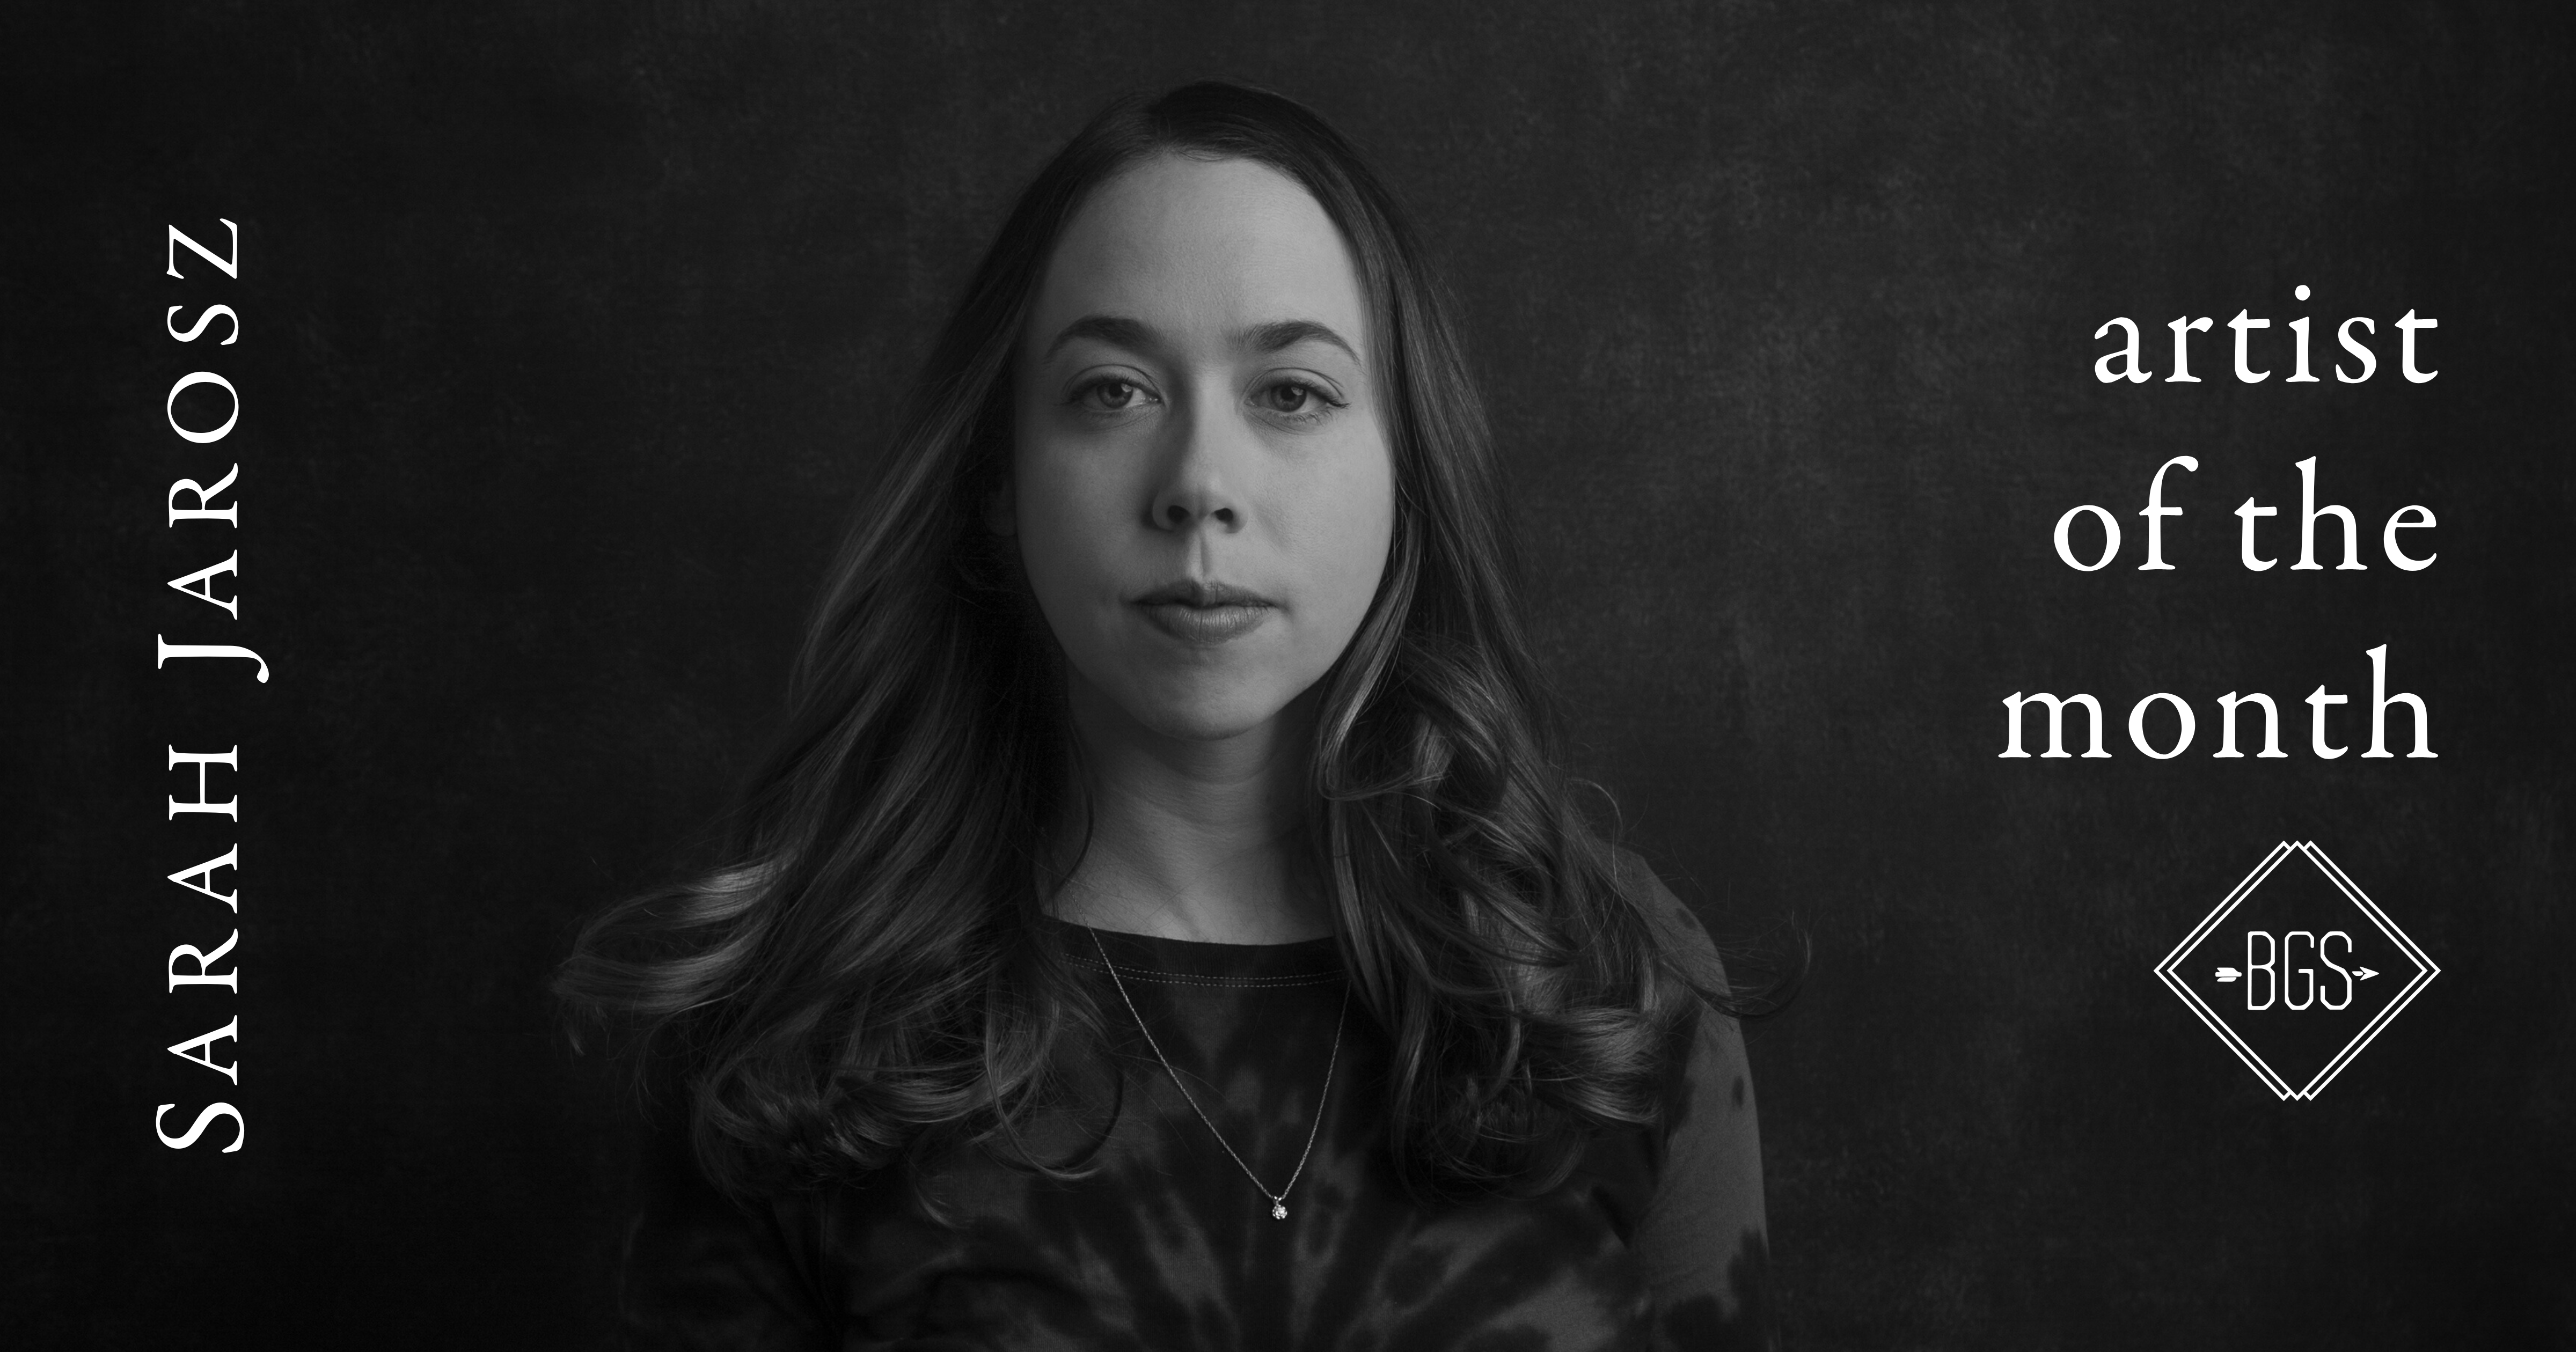 Sarah Jarosz Studies Her Heroes While Staying True to Herself (Part 2 of 2)